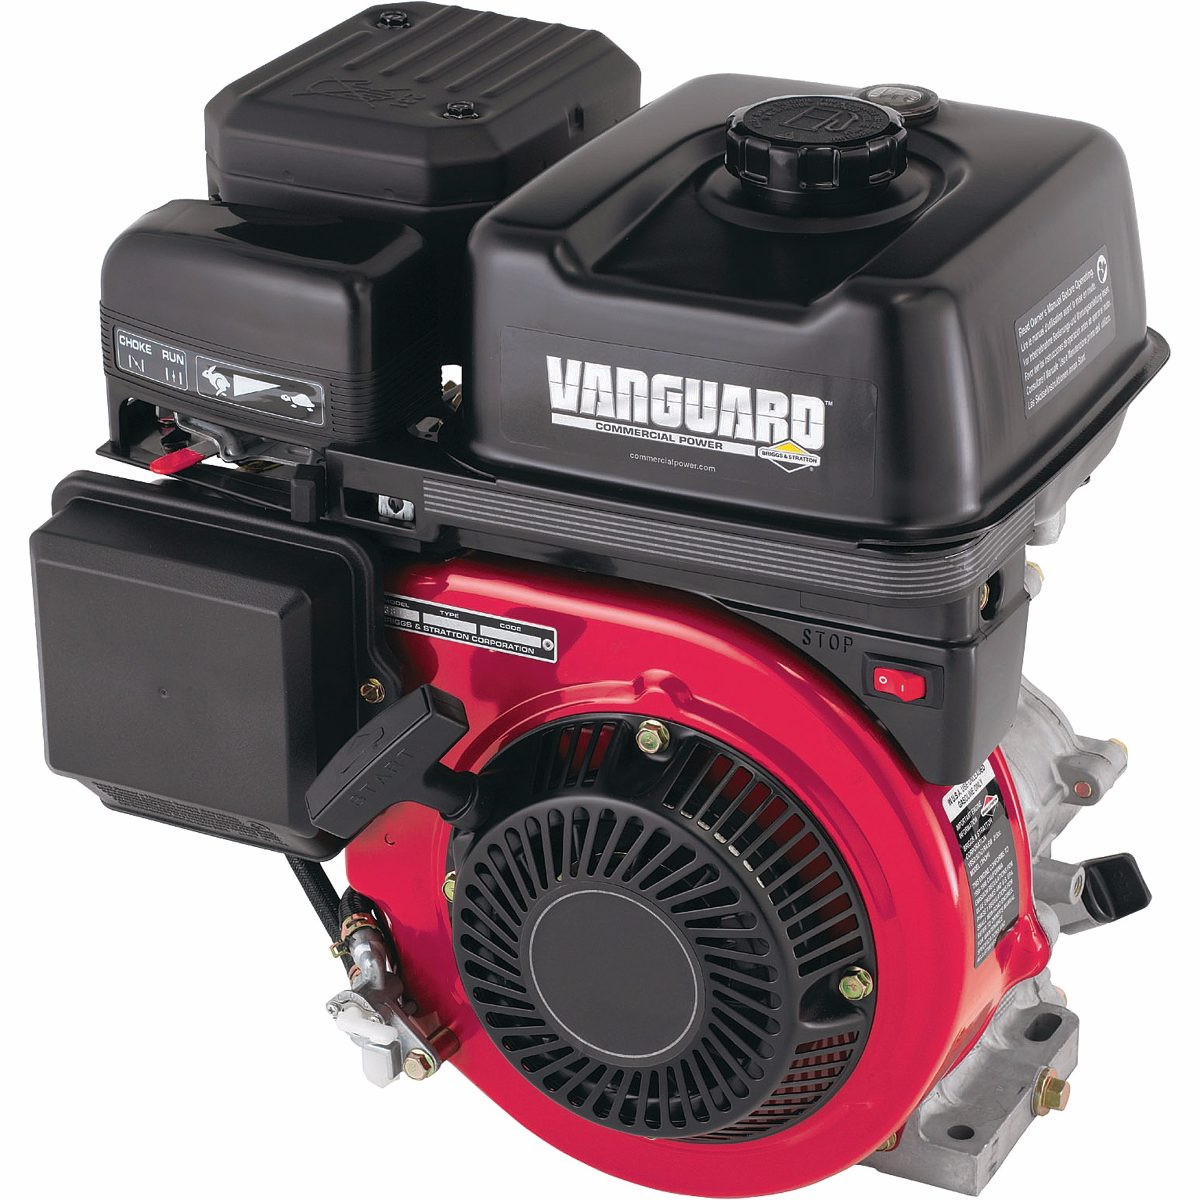 Motor Horizontal a Gasolina 13 HP Partida Manual Vanguard Briggs & Stratton